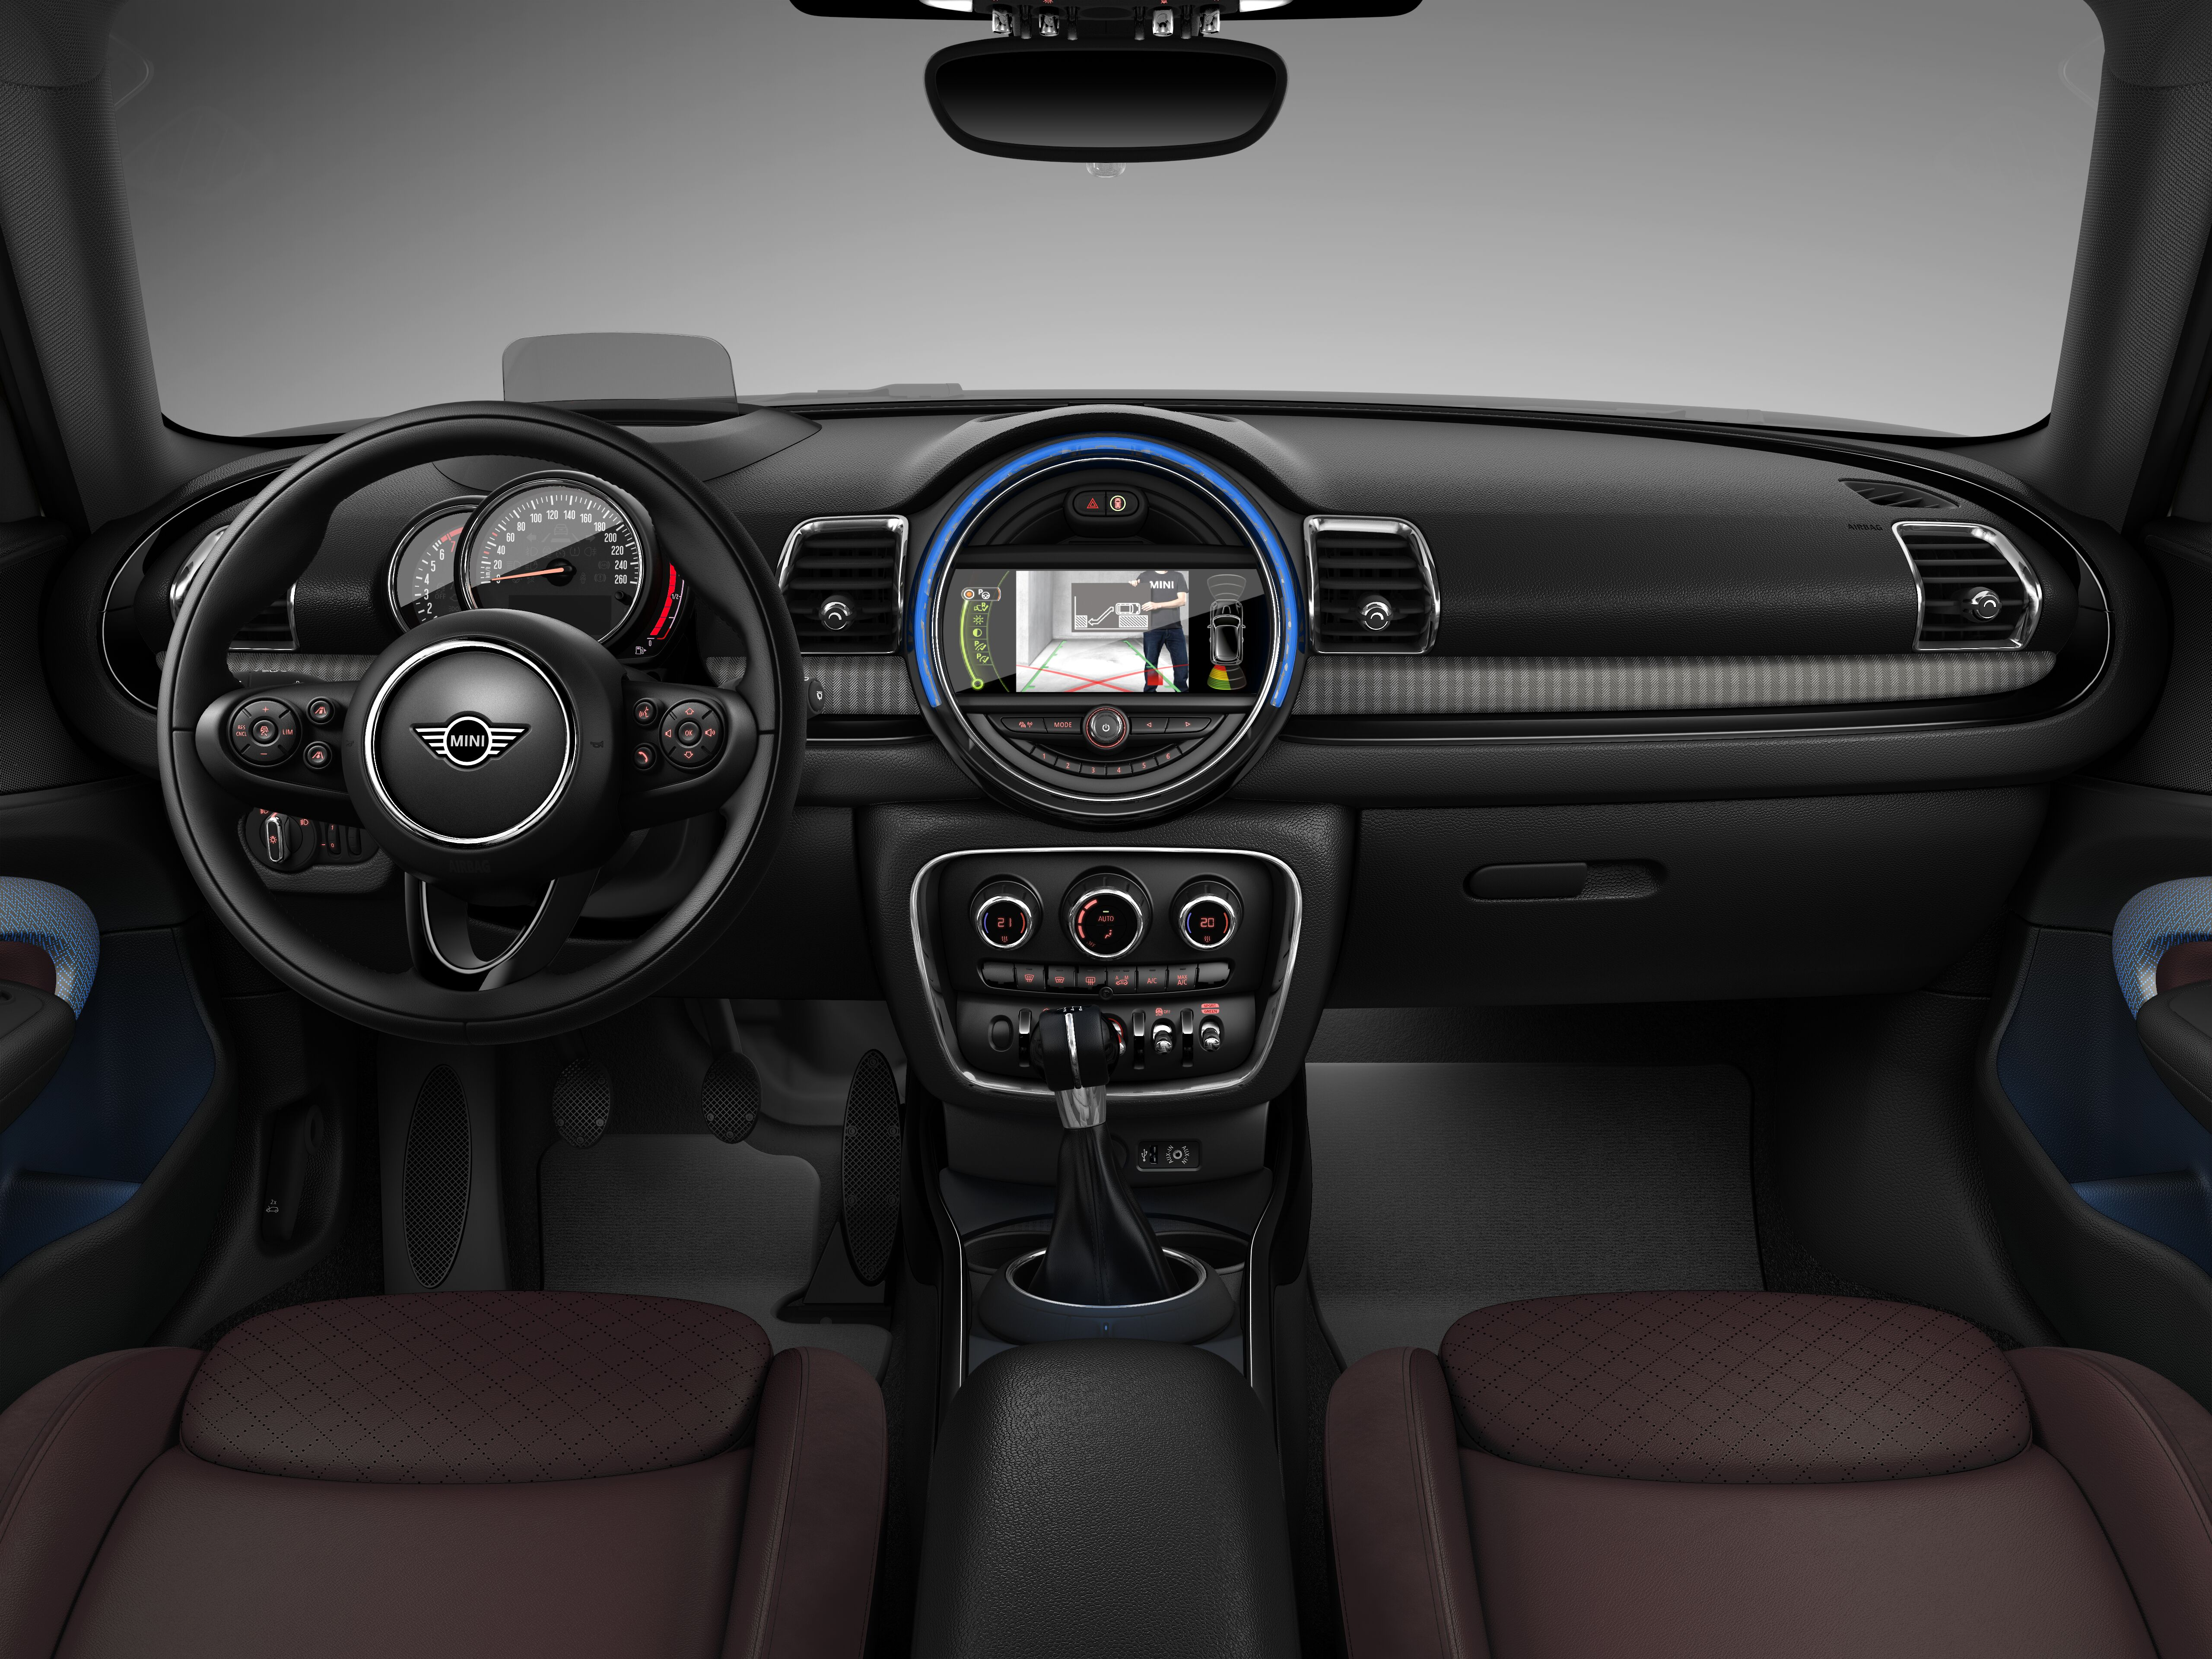 MINI Cooper S Clubman interior; dashboard and steering wheel